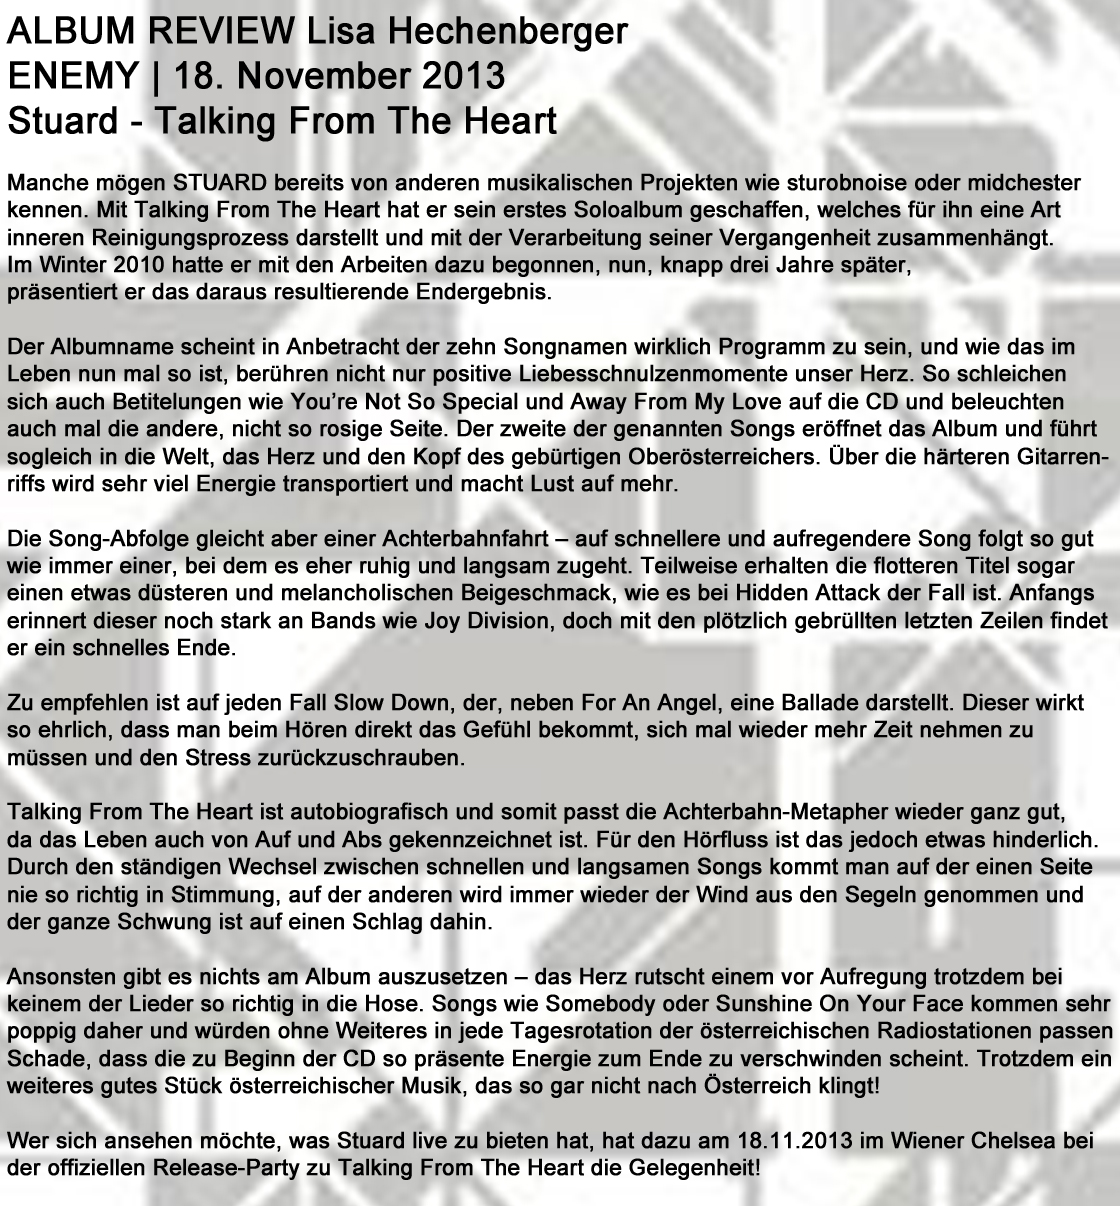 STU▲RD REVIEW Enemy Lisa Hechenberger 18